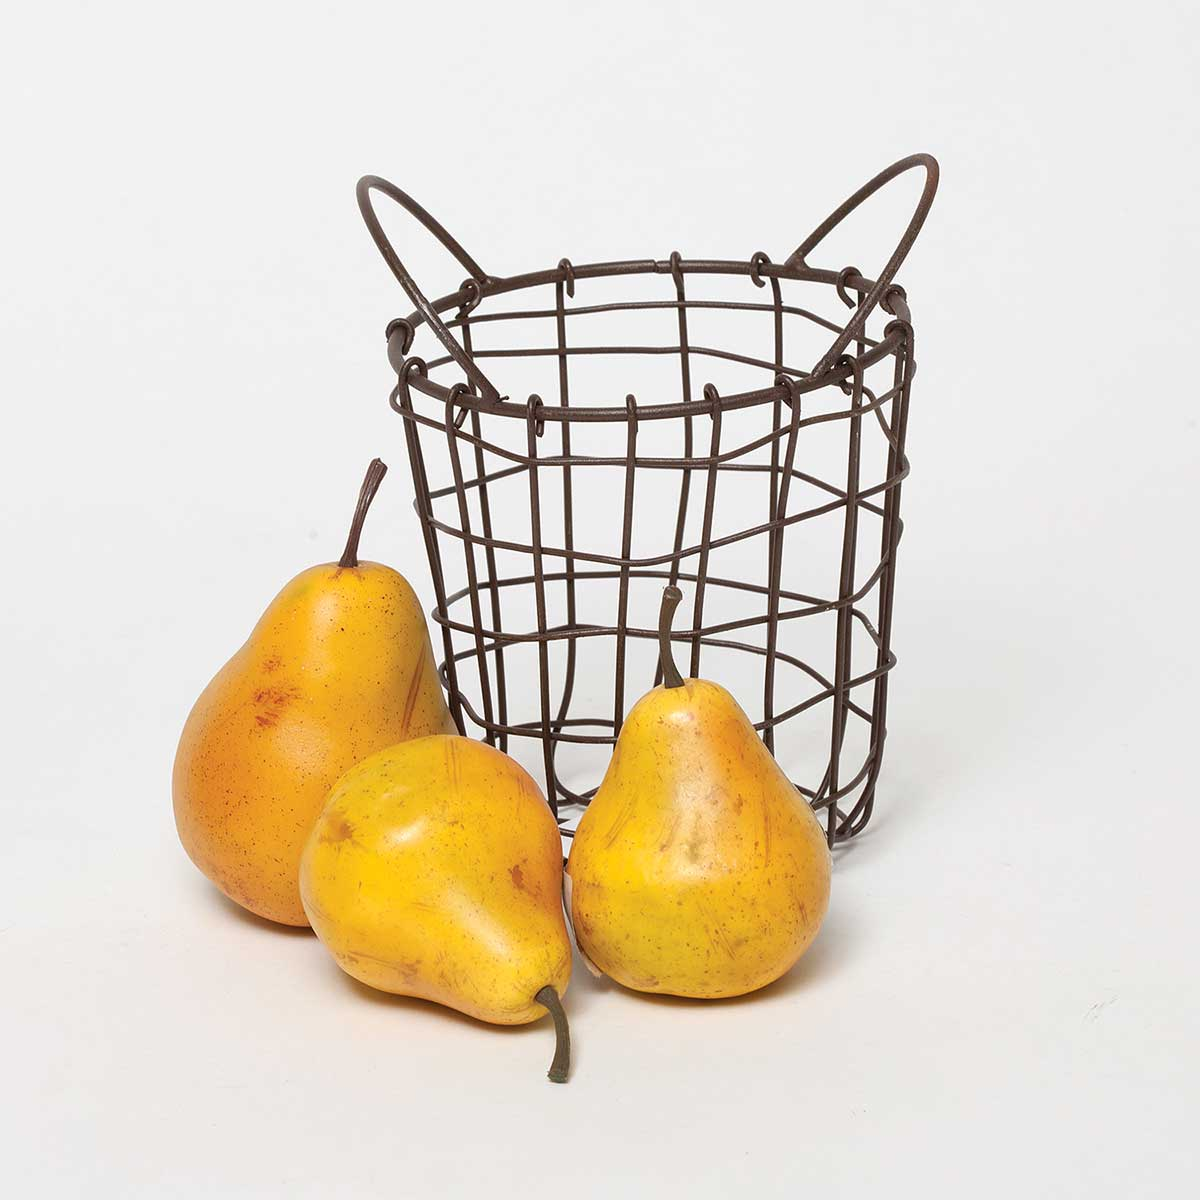 home decor wire baskets zia bella fashions fashion jewelry wire round vase with handles and yellow pears